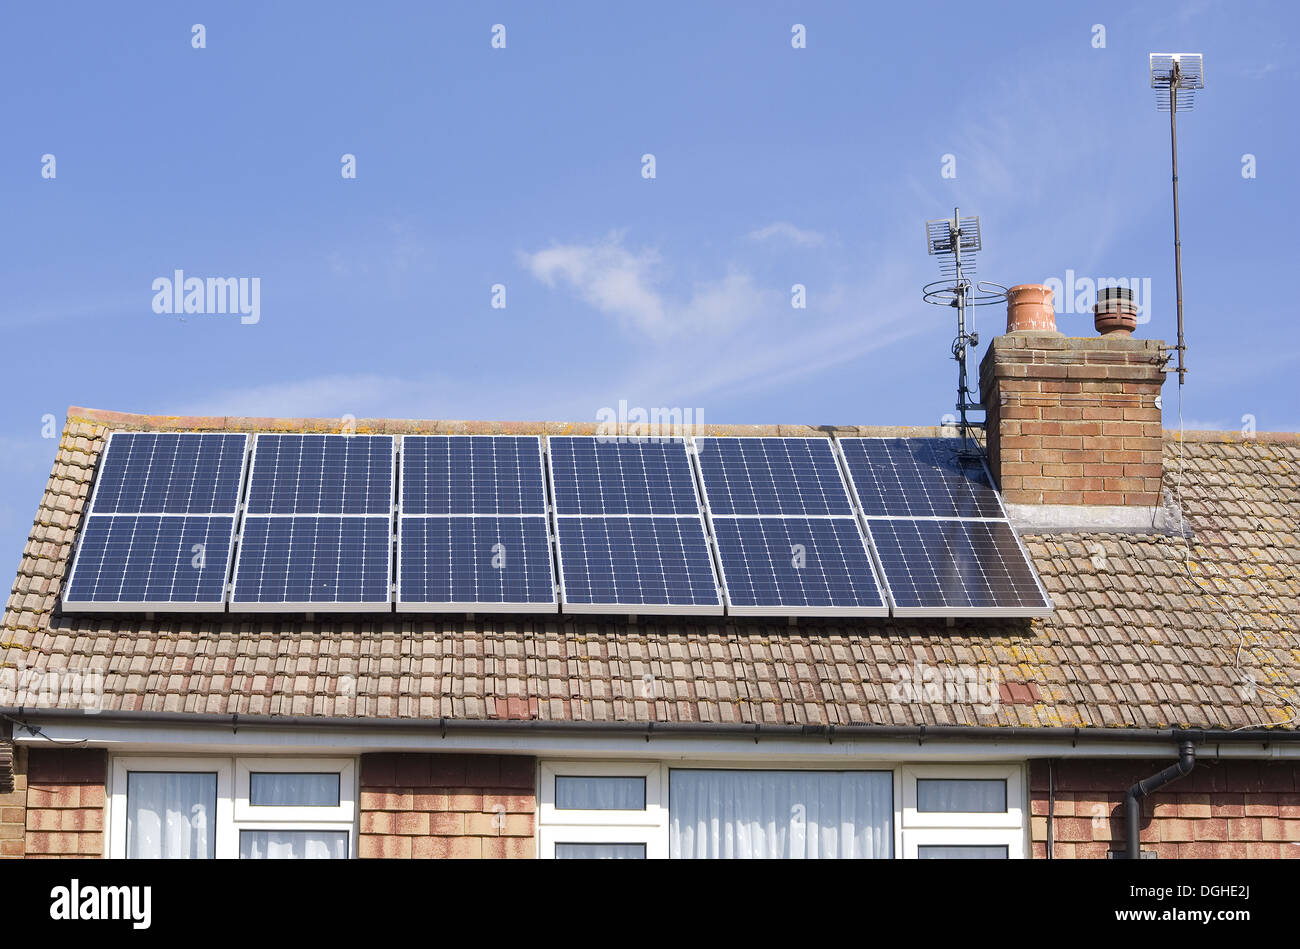 Solar panels for heating domestic hot water, on roof of house, Surrey, England, September - Stock Image